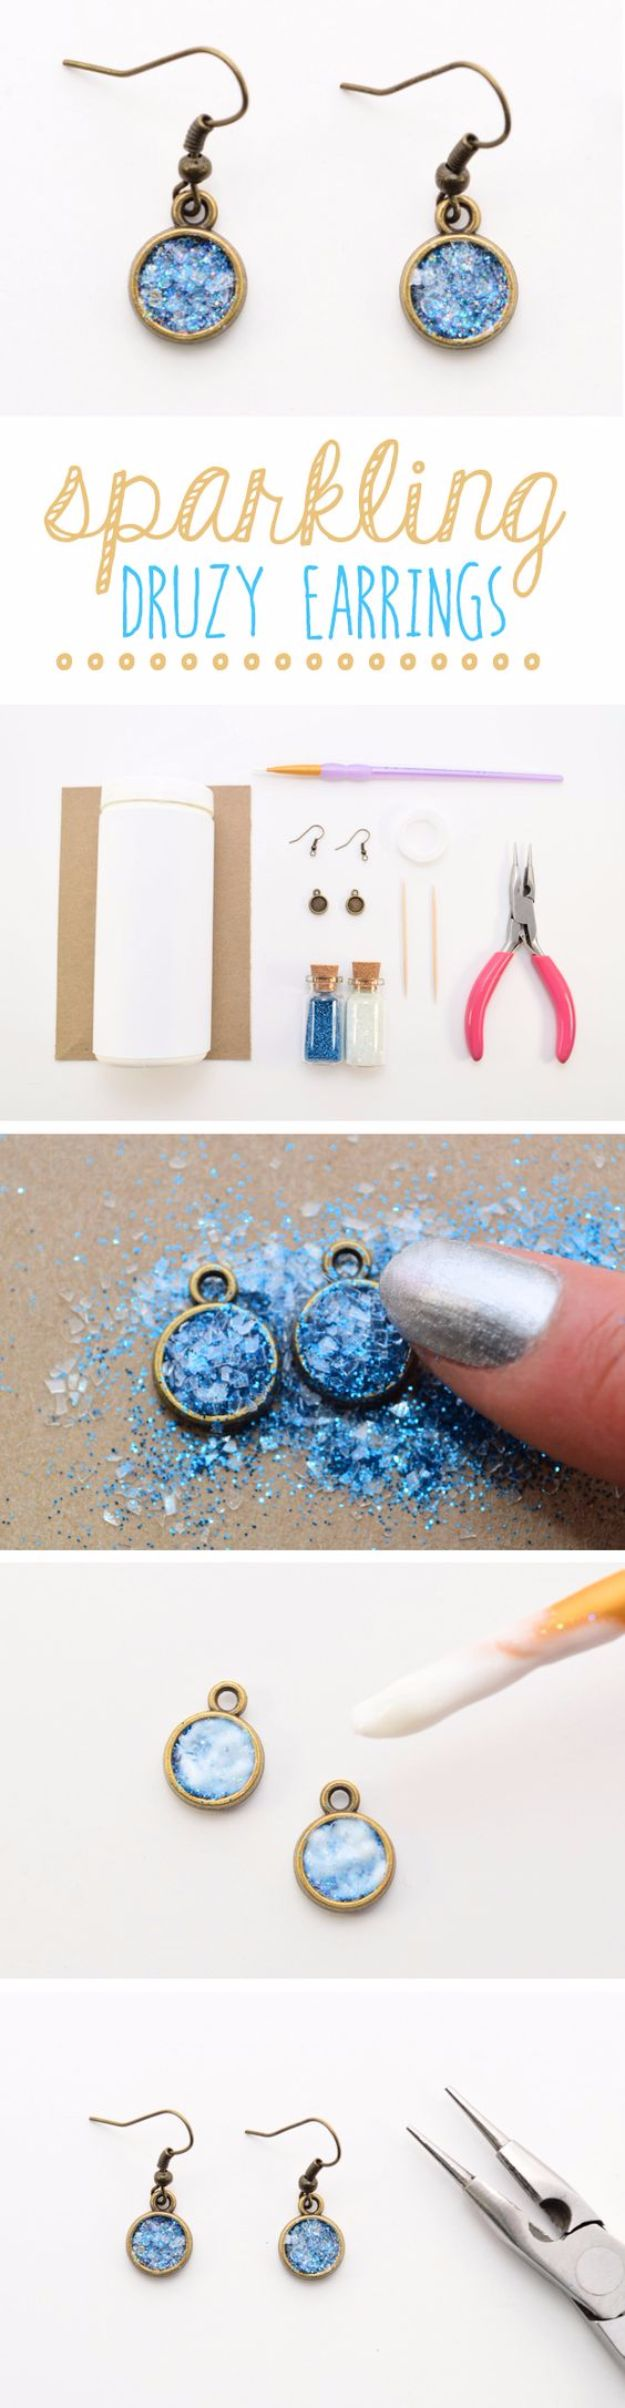 DIY Ideas WIth Glitter - Sparkling Druzy Earrings - Easy Crafts and Projects for Decoration, Gifts, and Bedroom Decor - How To Make Ombre, Mod Podge and Glitter Mason Jar Gift Ideas For Teens - Easy Clothes and Makeup Crafts For Teenagers http://diyprojectsforteens.com/glitter-crafts-ideas